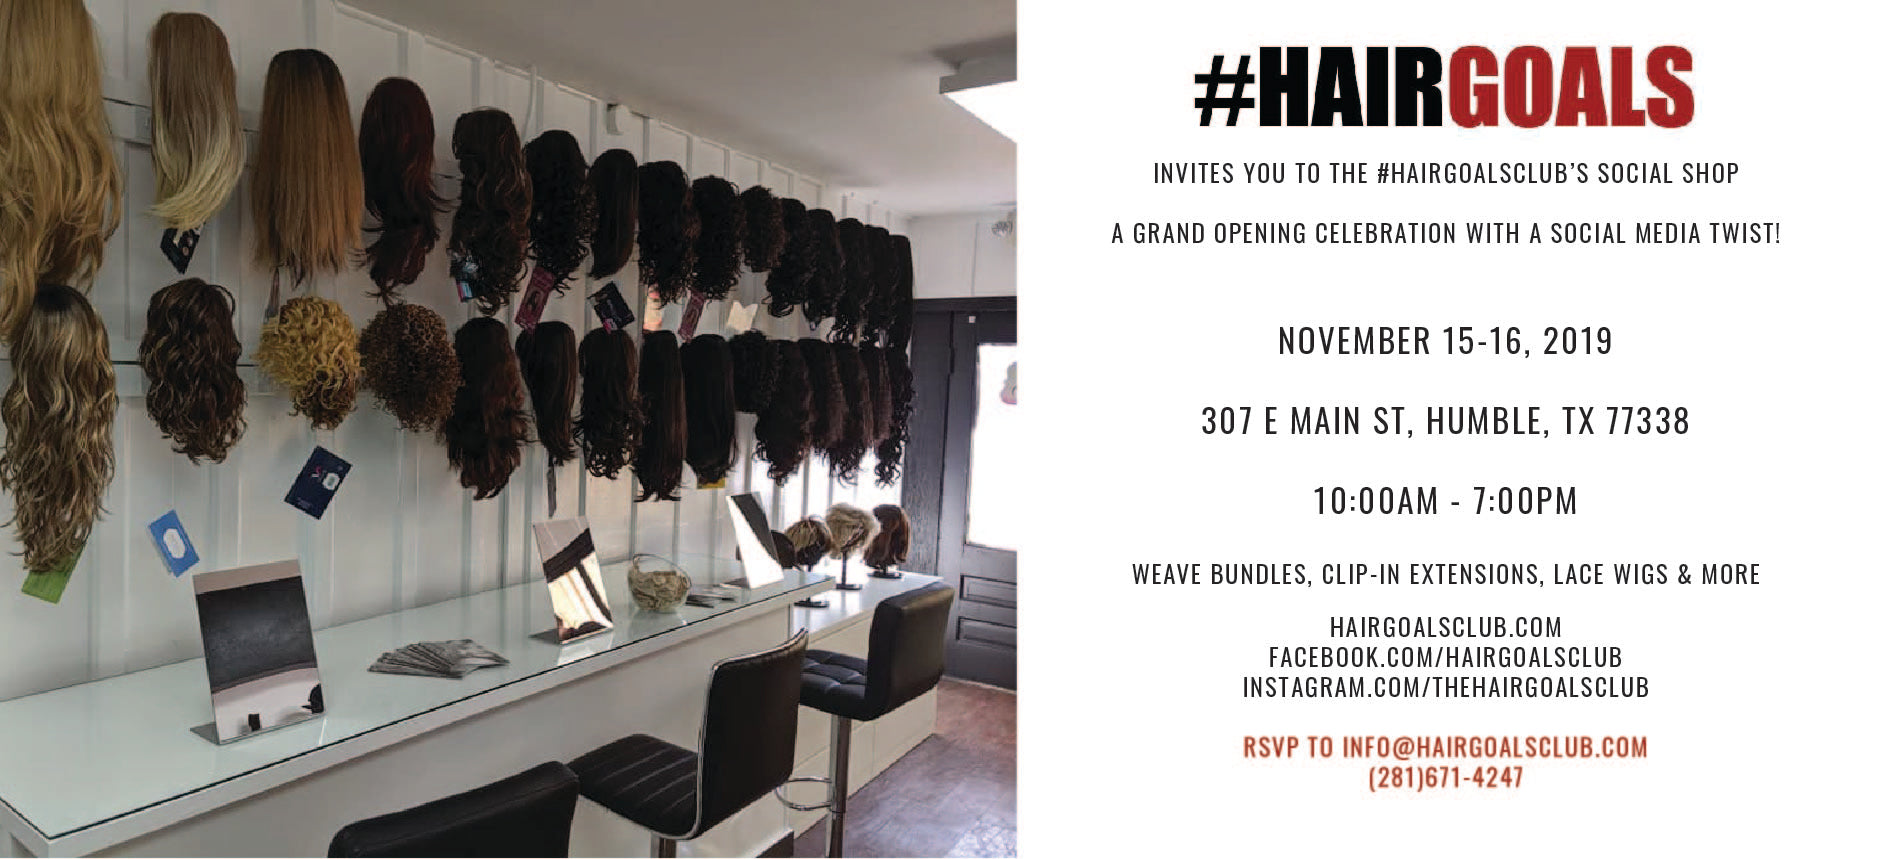 Hairgoals Club to host first 'social shop' in Humble Texas